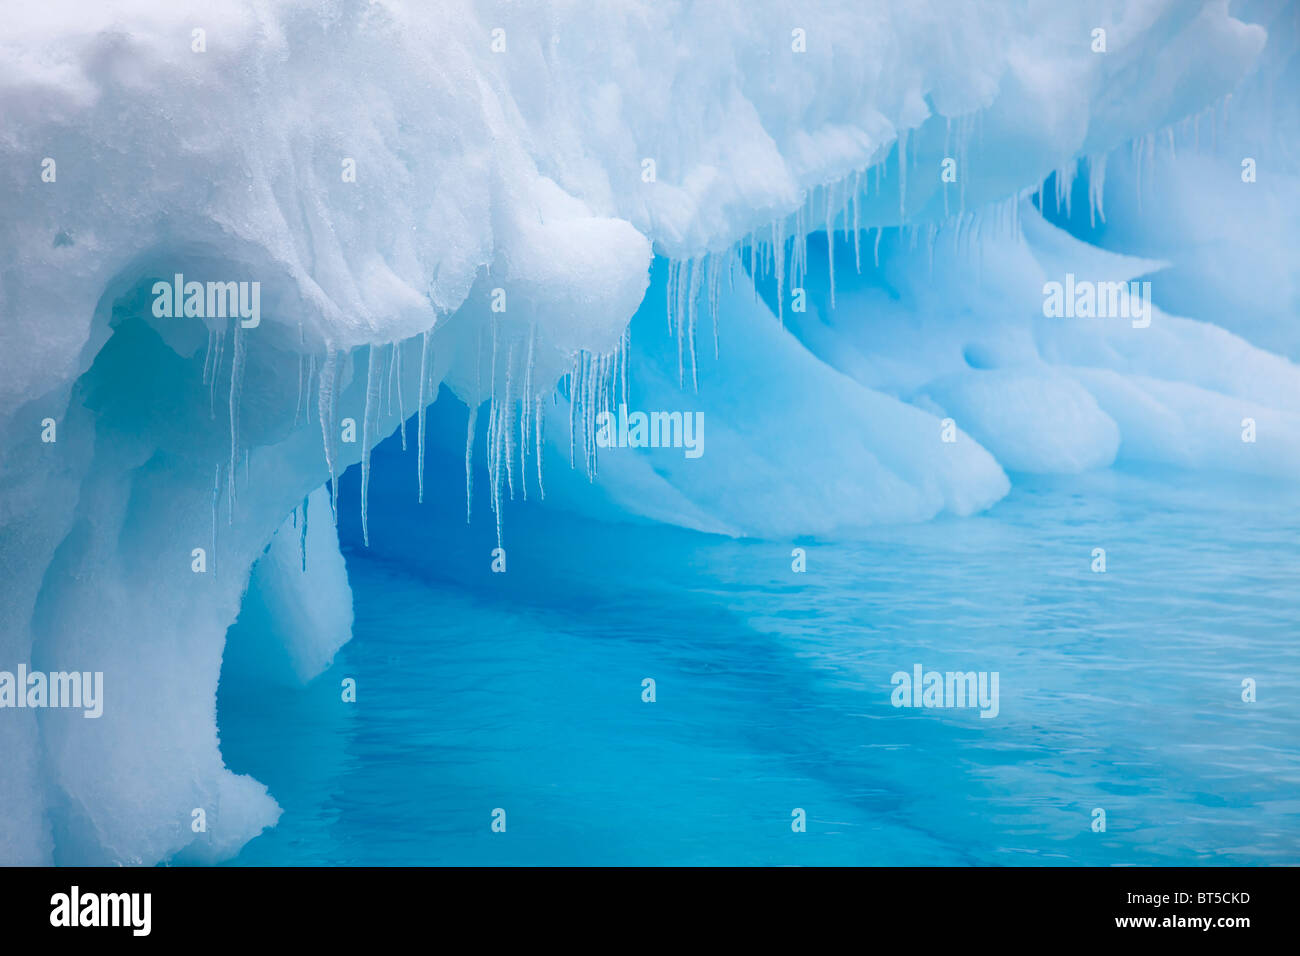 Large floating icebergs near Brown Bluff, Northern tip of the Antarctic Peninsula. - Stock Image